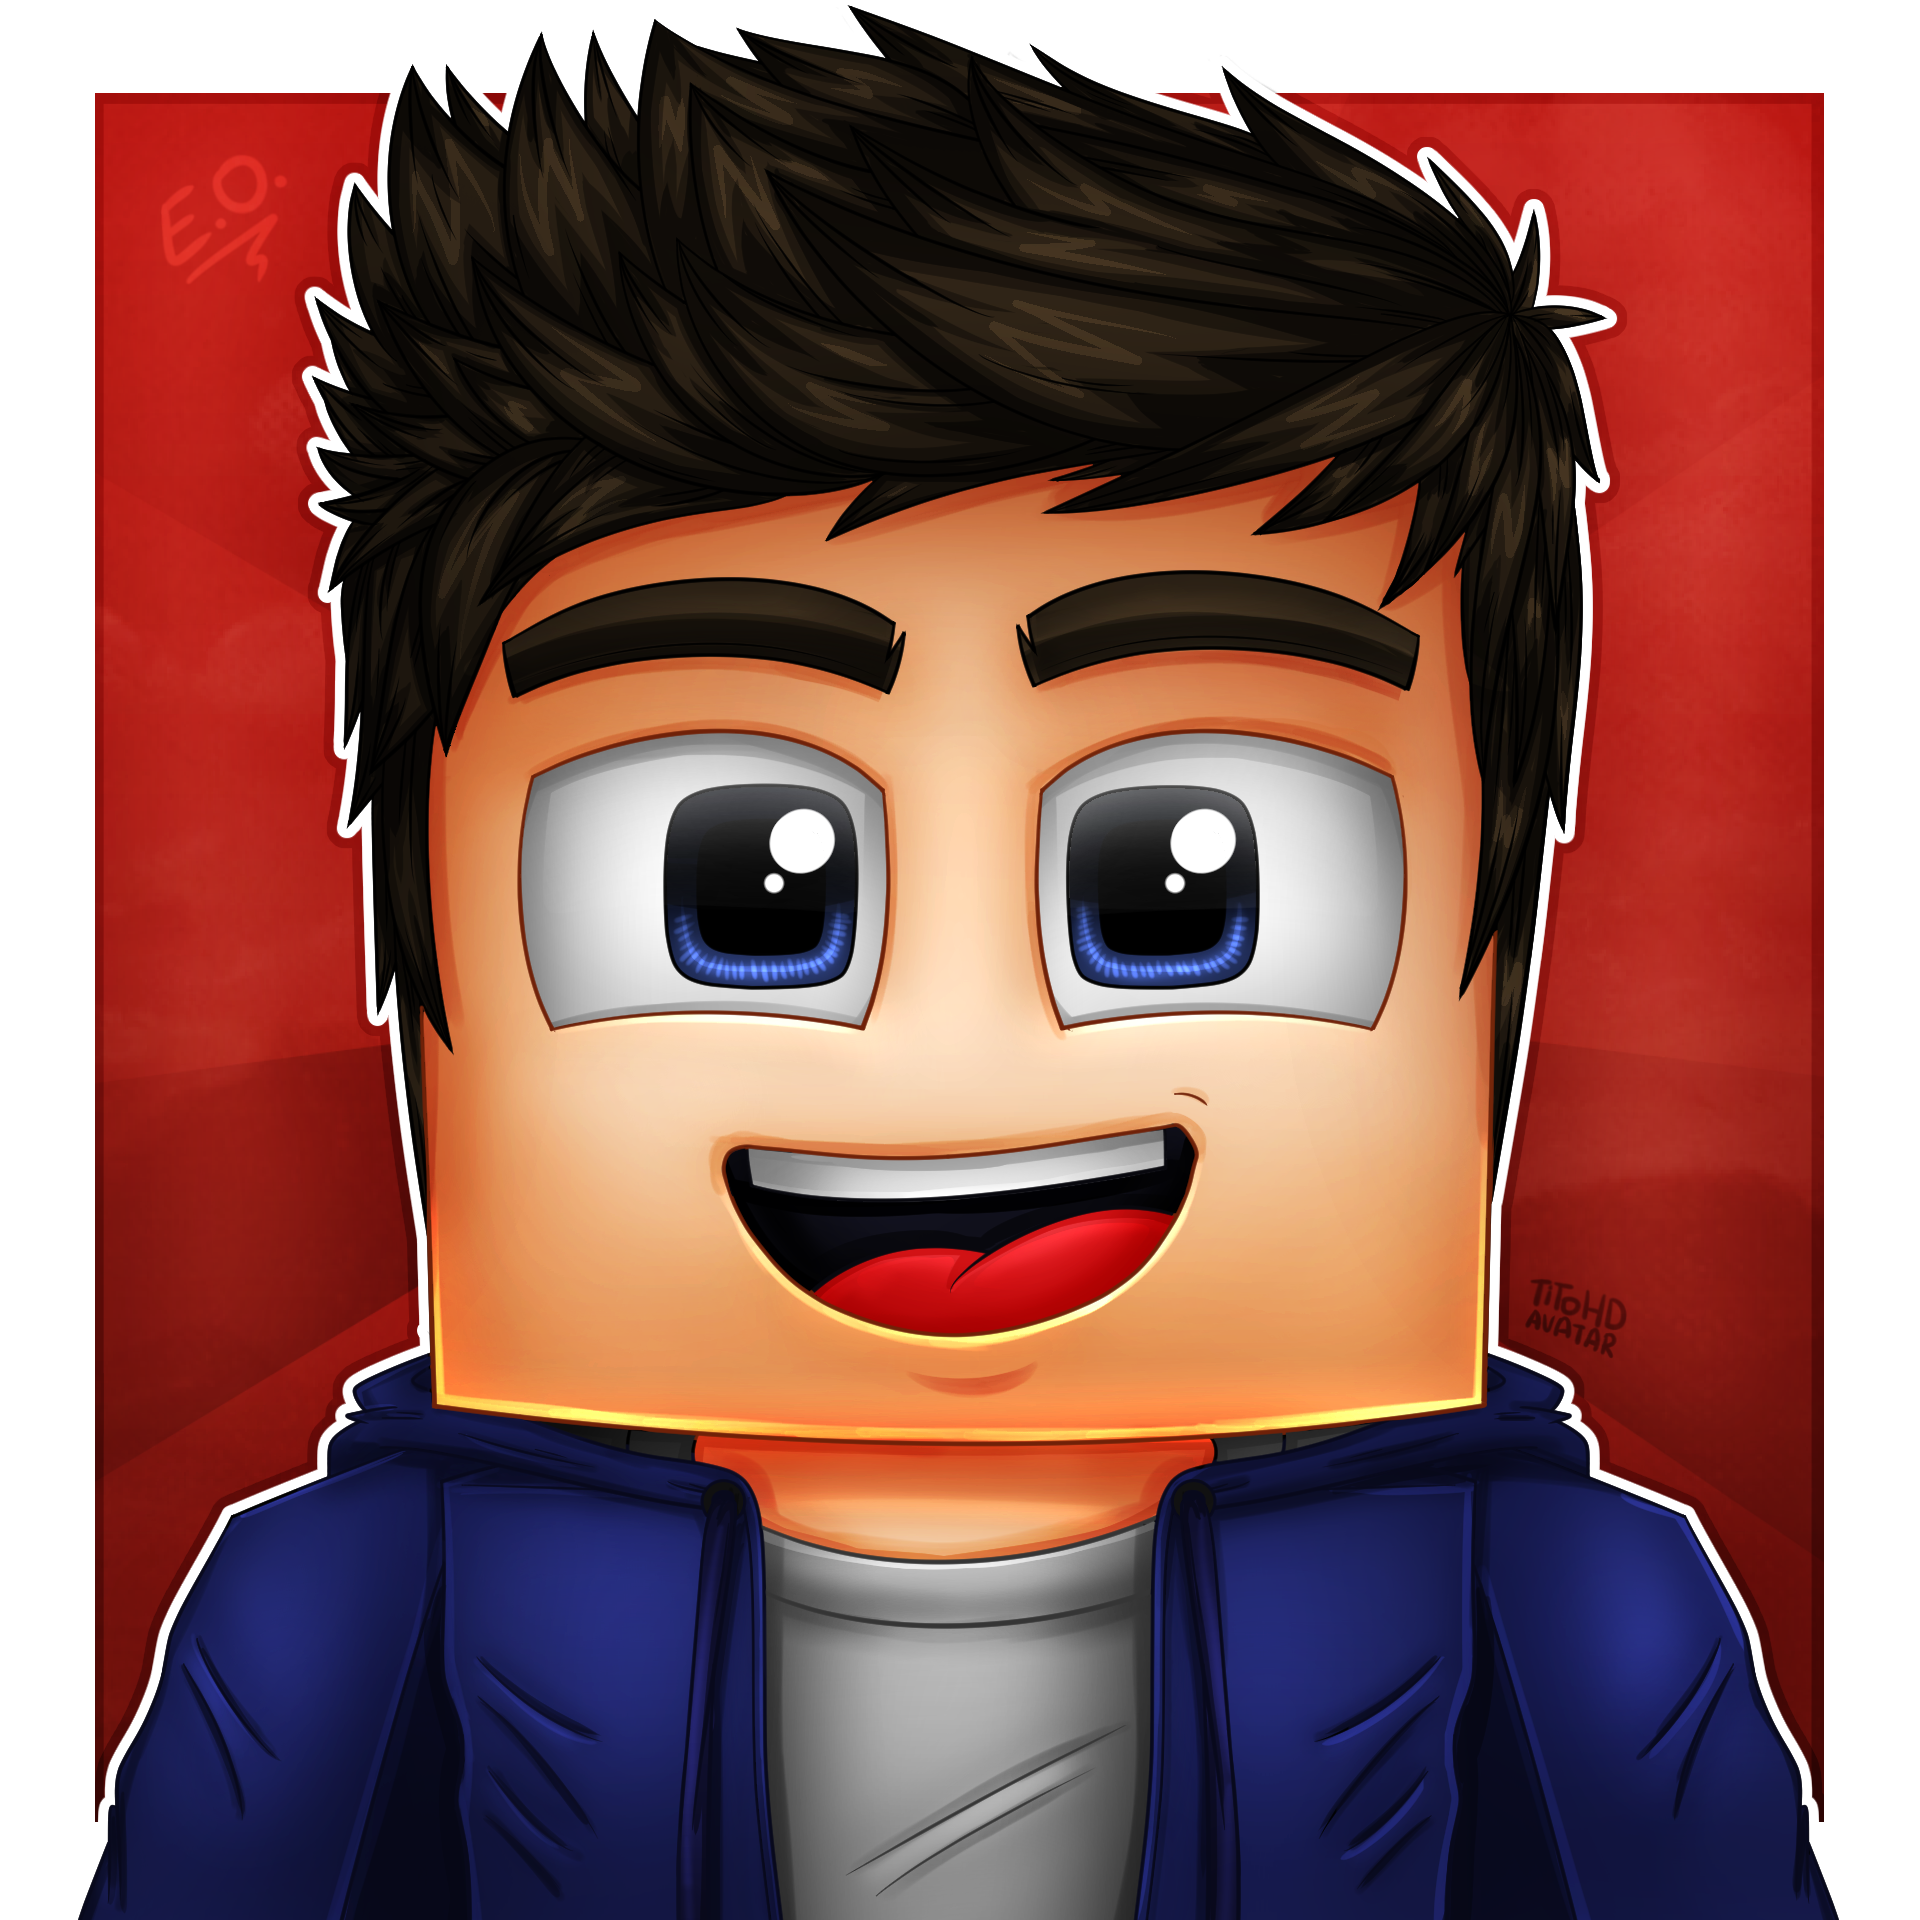 Eonofre on twitter minecraft avatar giveaway rt fav - Cool youtube pictures ...